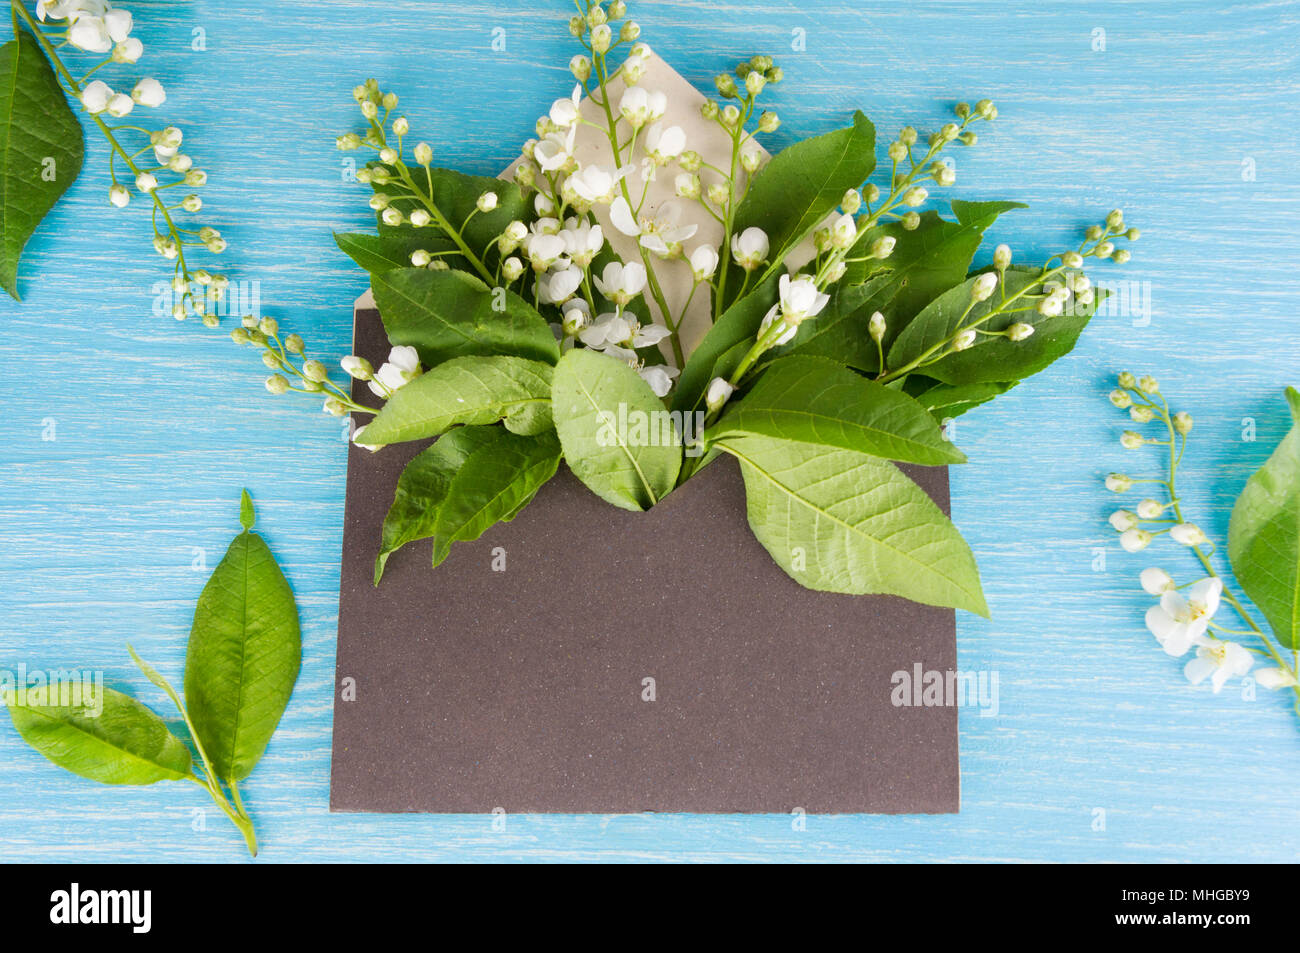 Colorful Spring Flowers In Envelope Flower Delivery Concept Stock